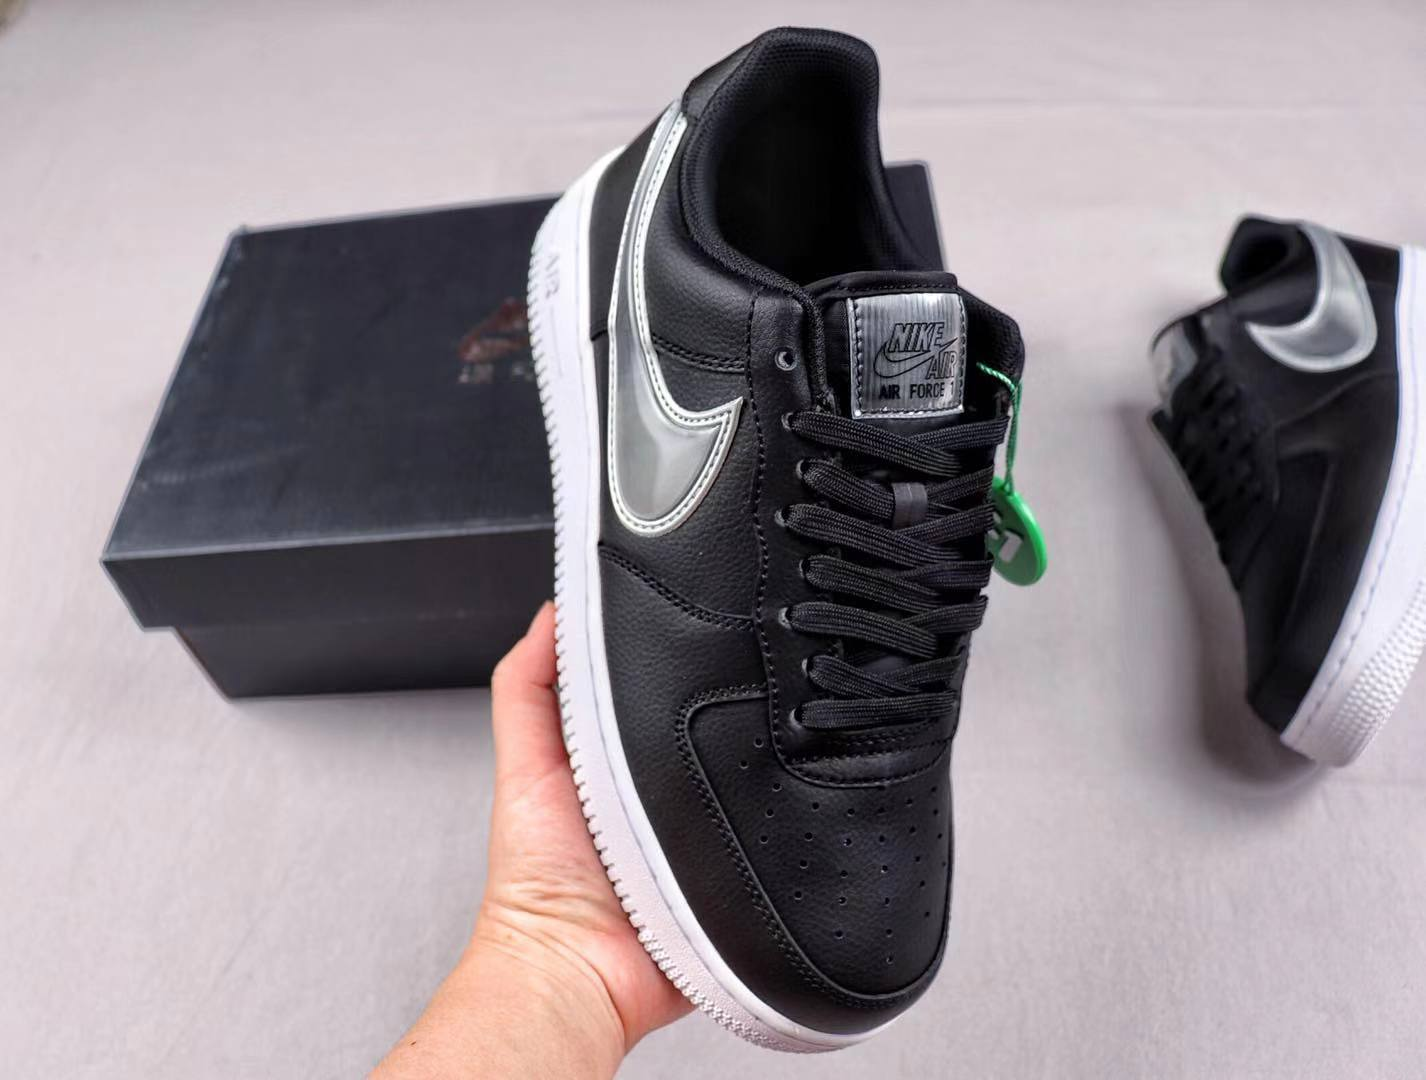 Buy Nike Air Force 1 Low Oversized Swoosh Black/White Lifestyle Shoes AO2441-003